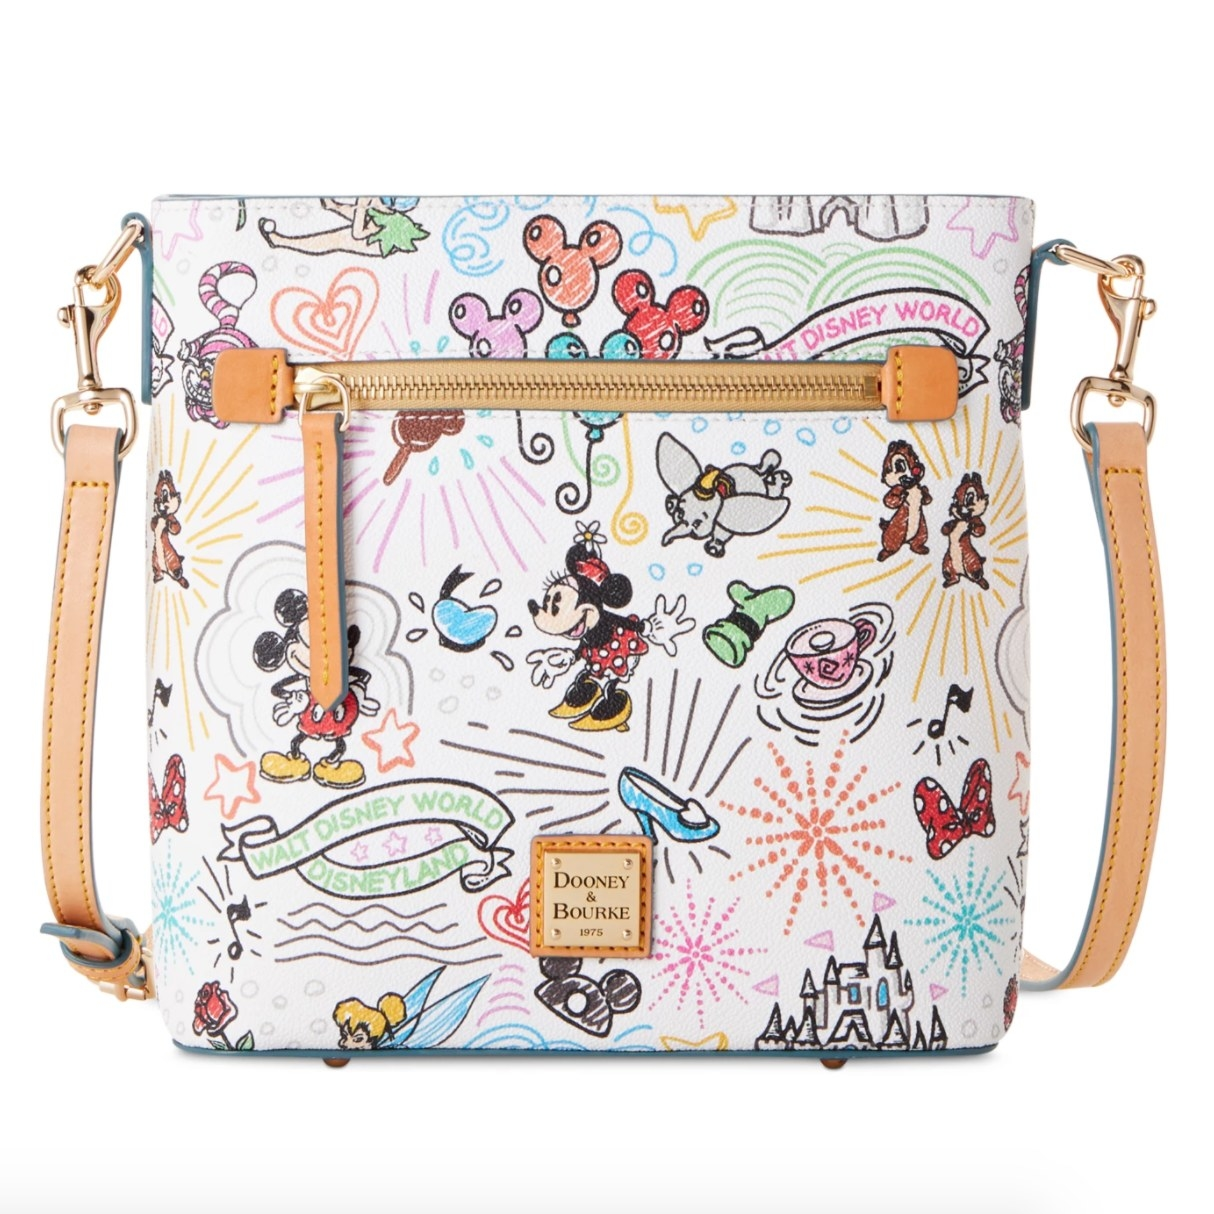 A crossbody purse with colorful Disney character and park decorations